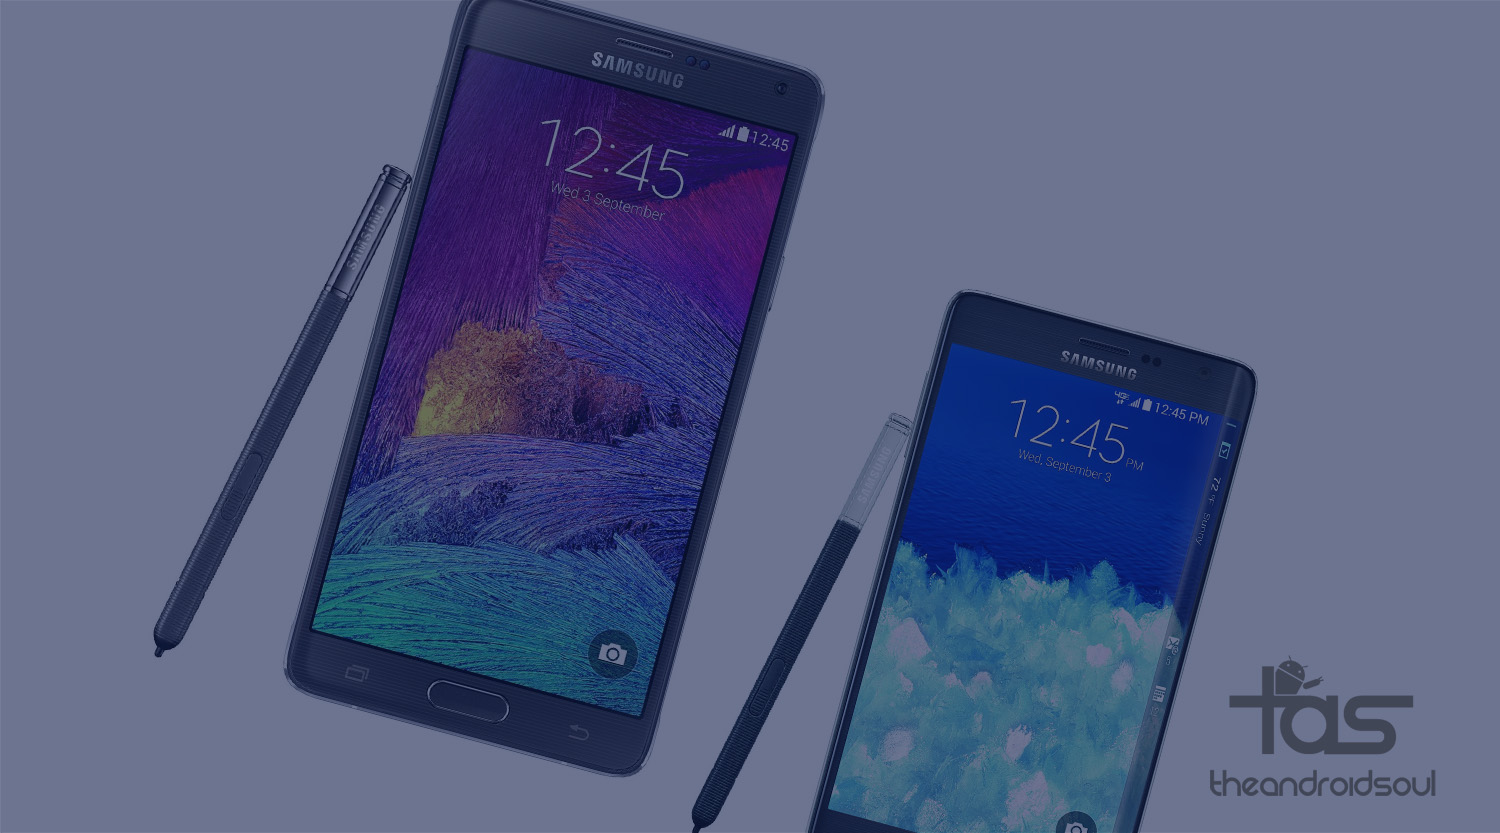 About OI2 Android 5 1 1 Root for AT&T Galaxy Note 4 and Note